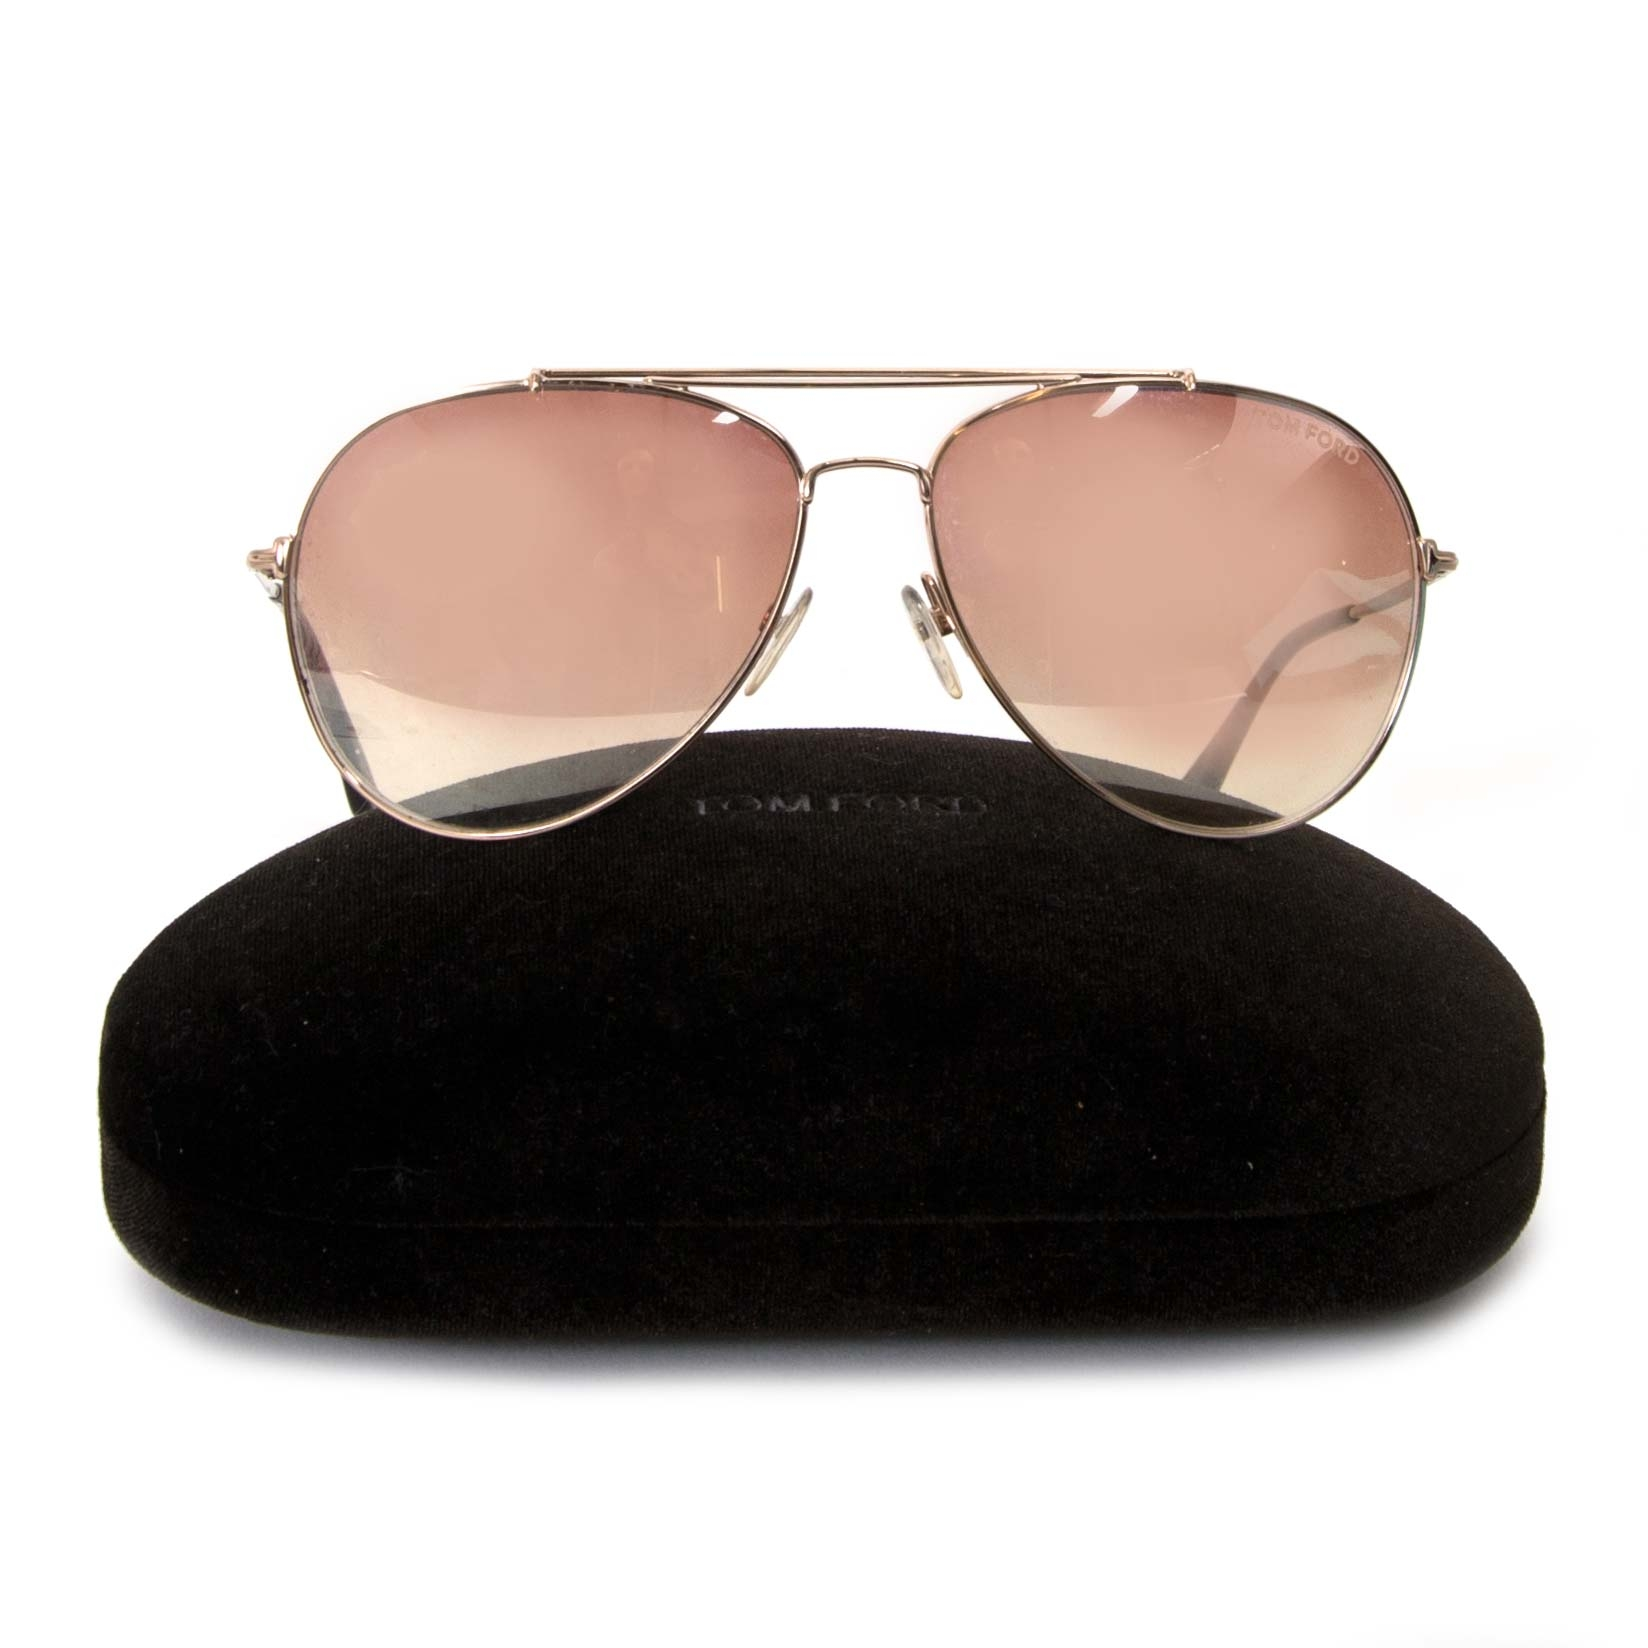 tom ford aviator sunglasses now for sale at labellov vintage fashion webshop belgium